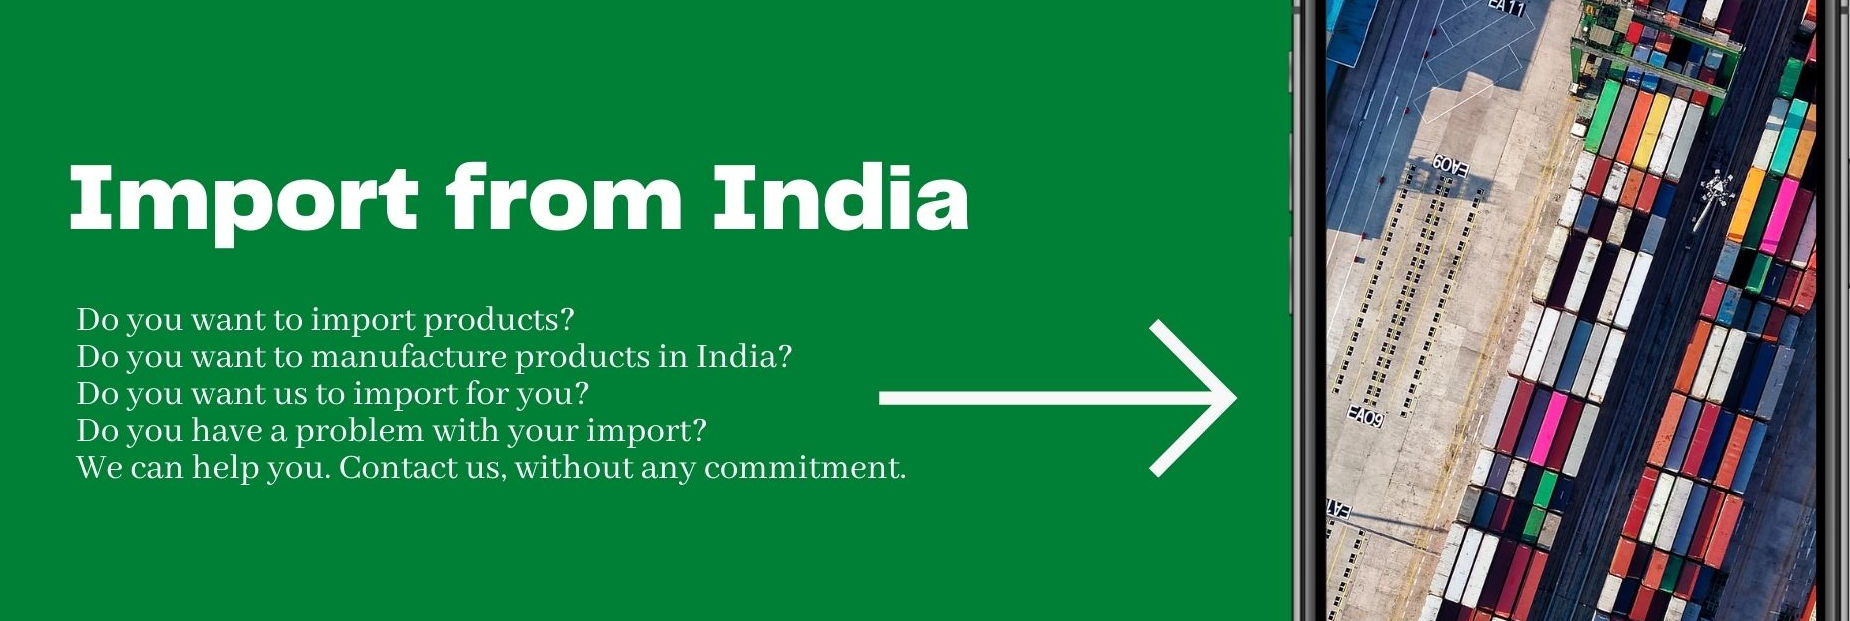 Import from India. Imports and import from India